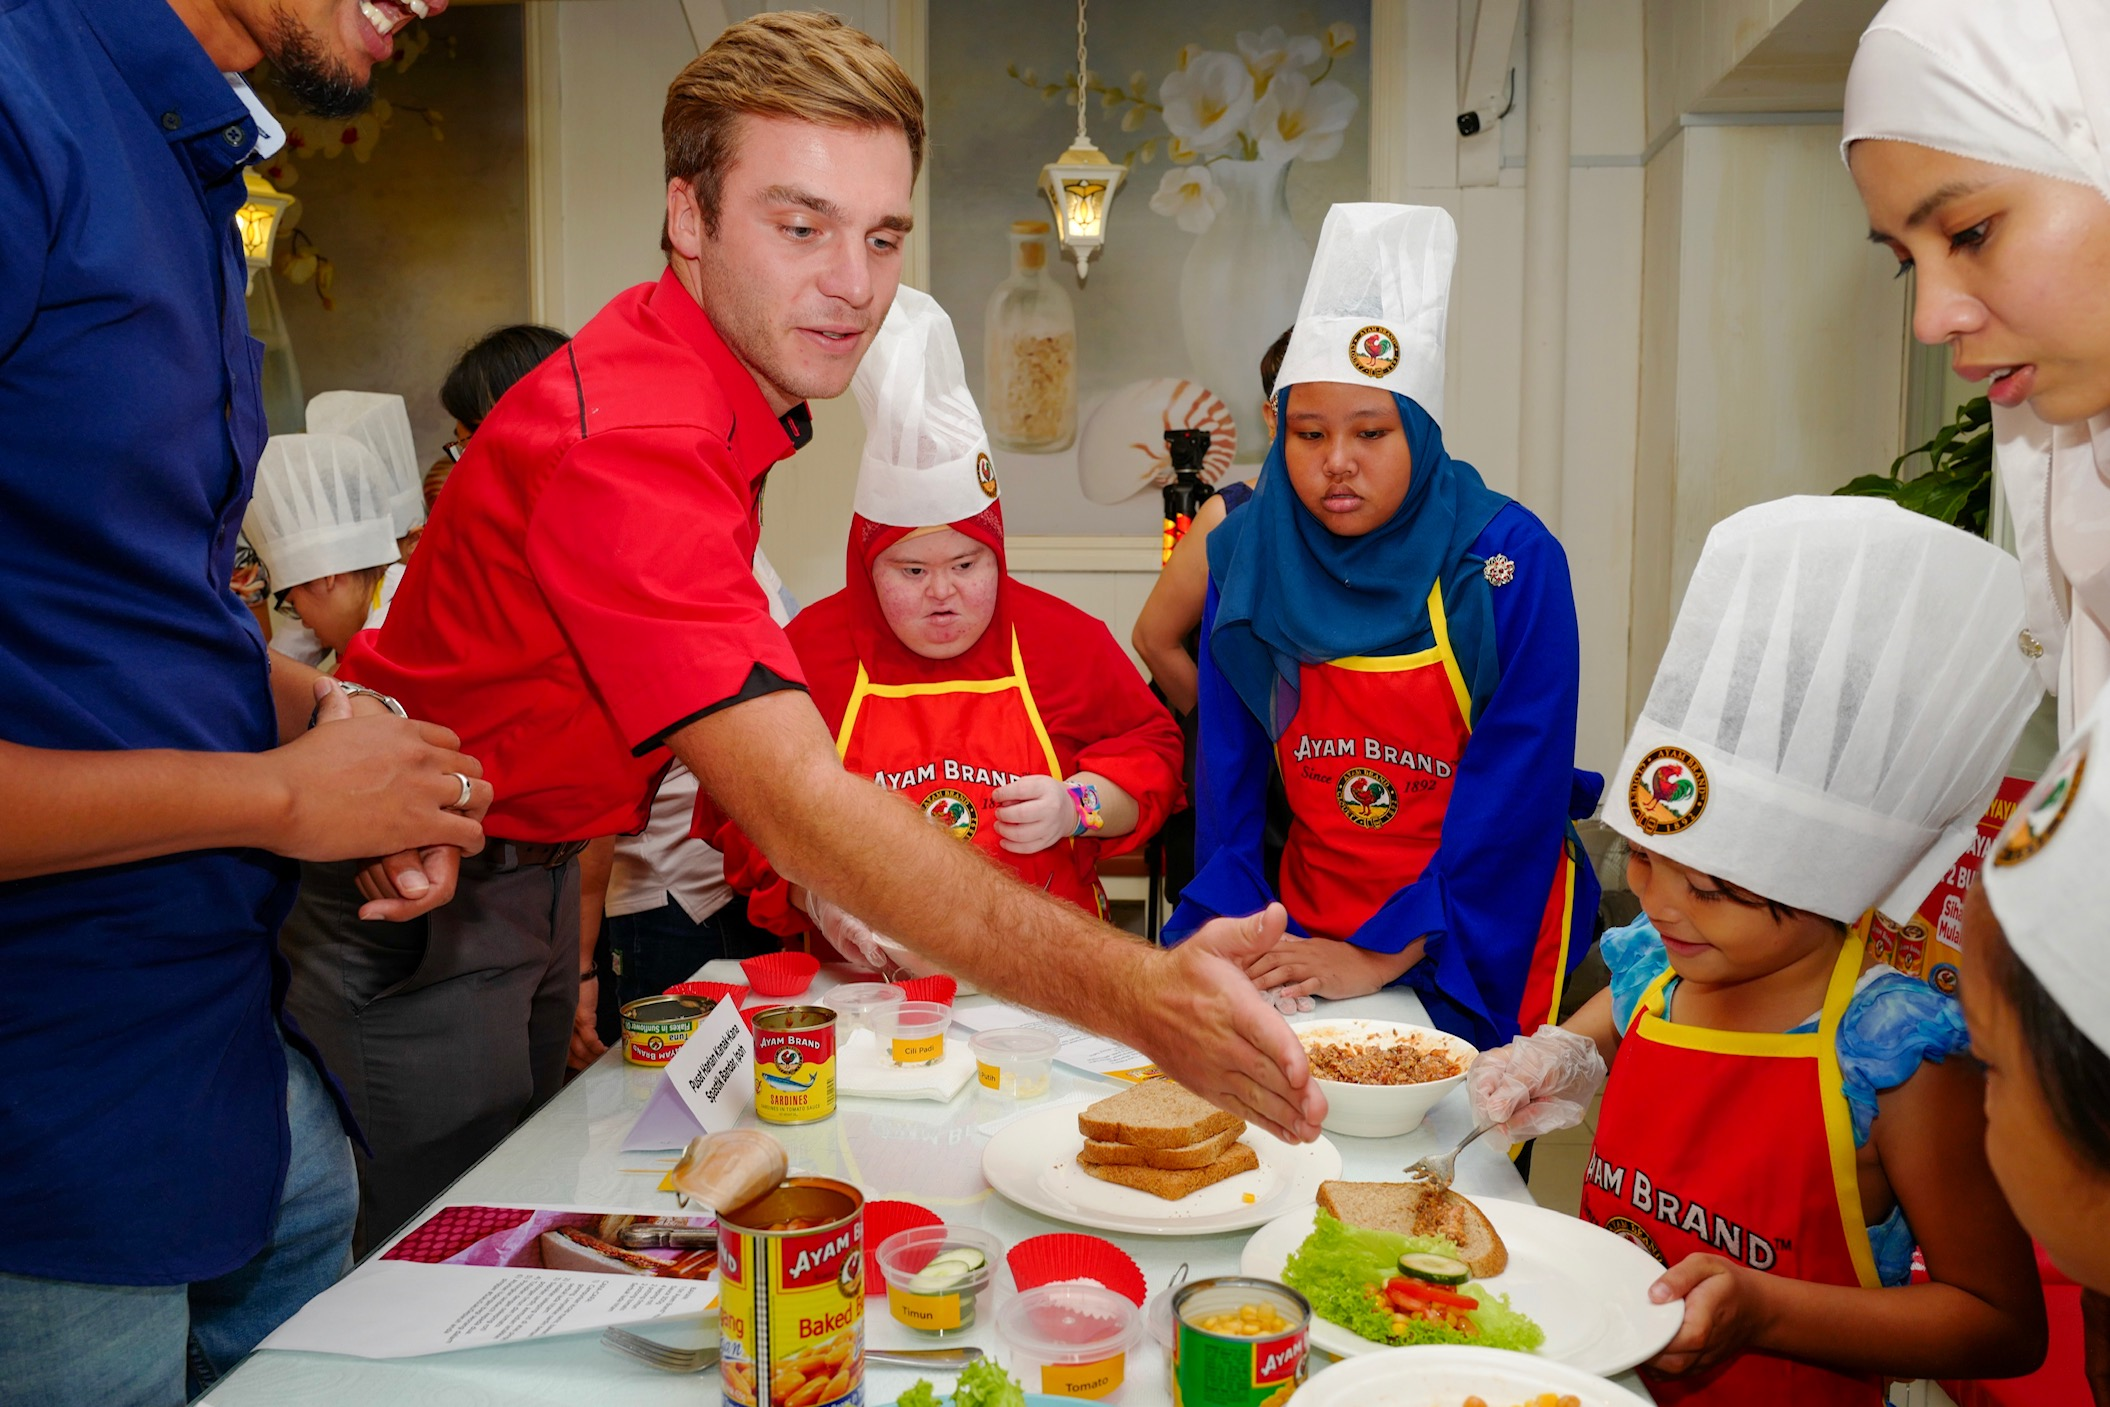 Ayam Brand promotes healthy eating habits among children